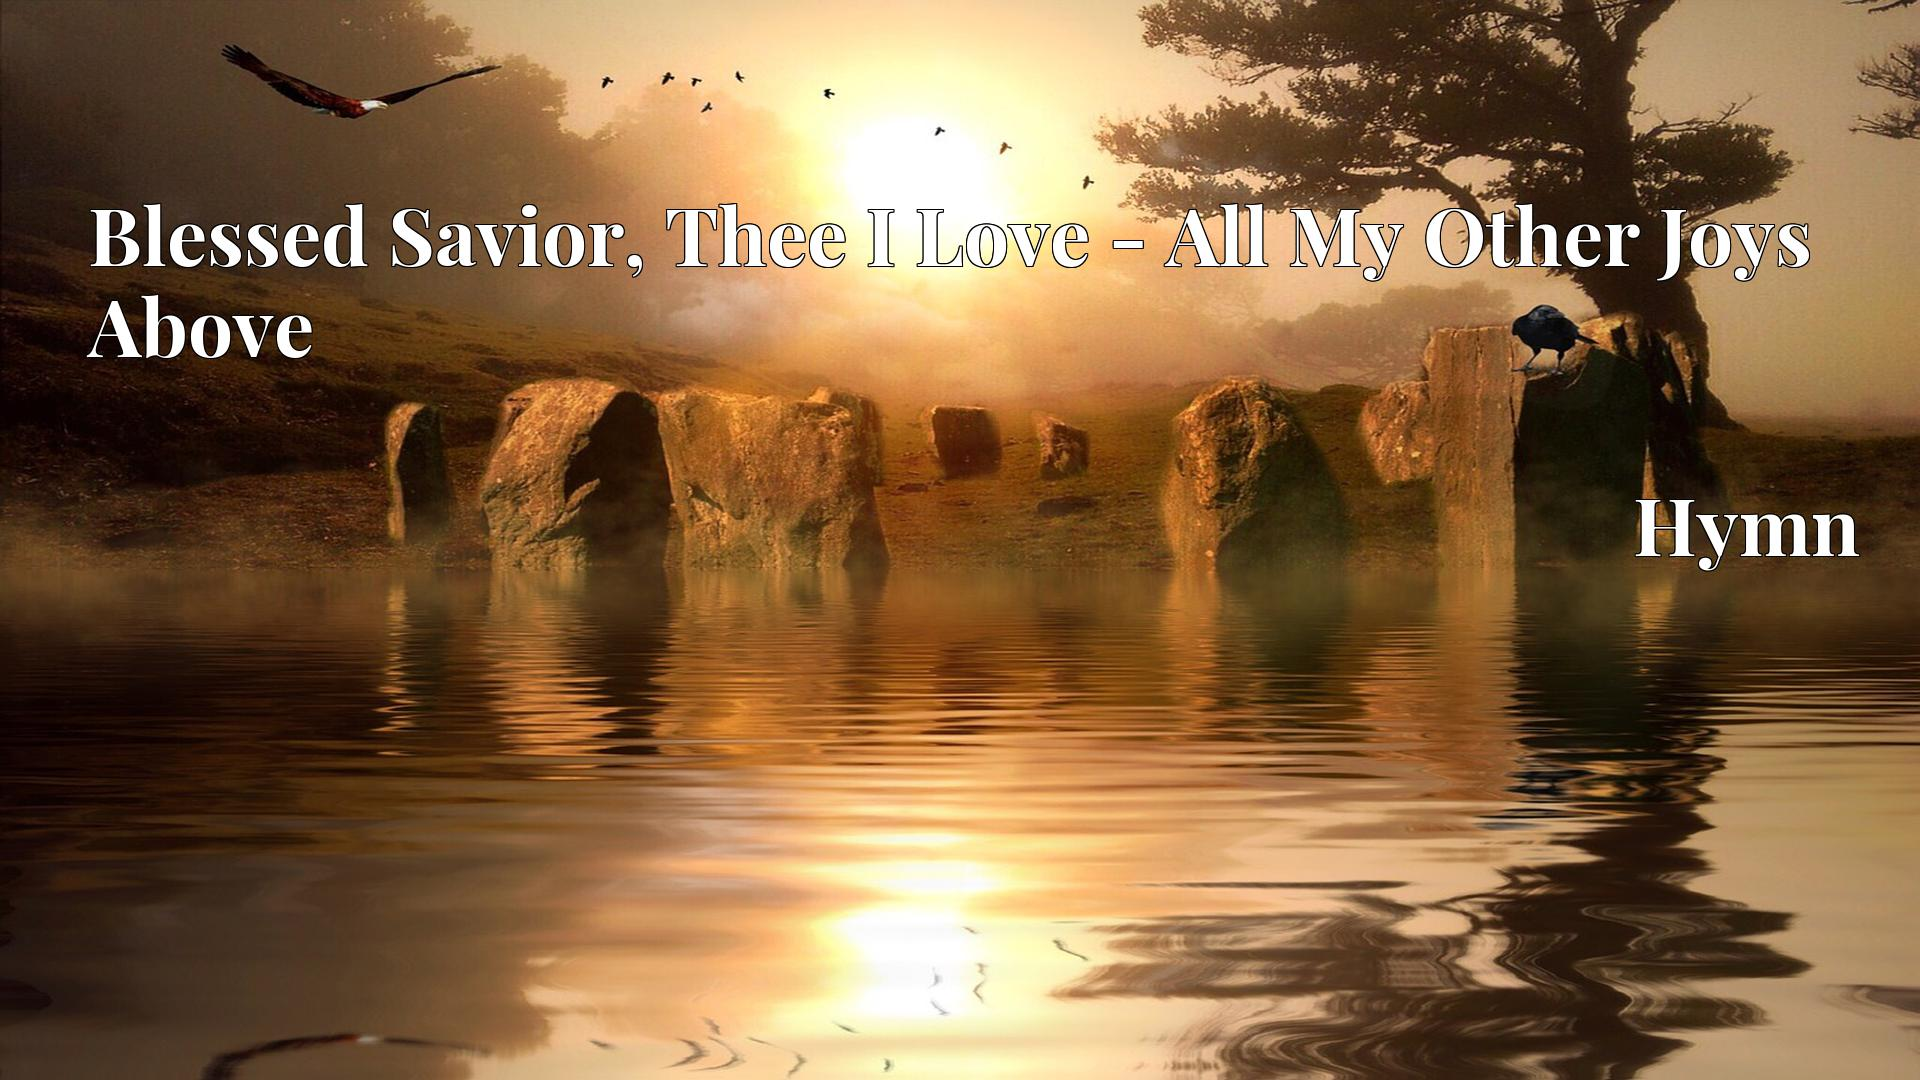 Blessed Savior, Thee I Love - All My Other Joys Above - Hymn